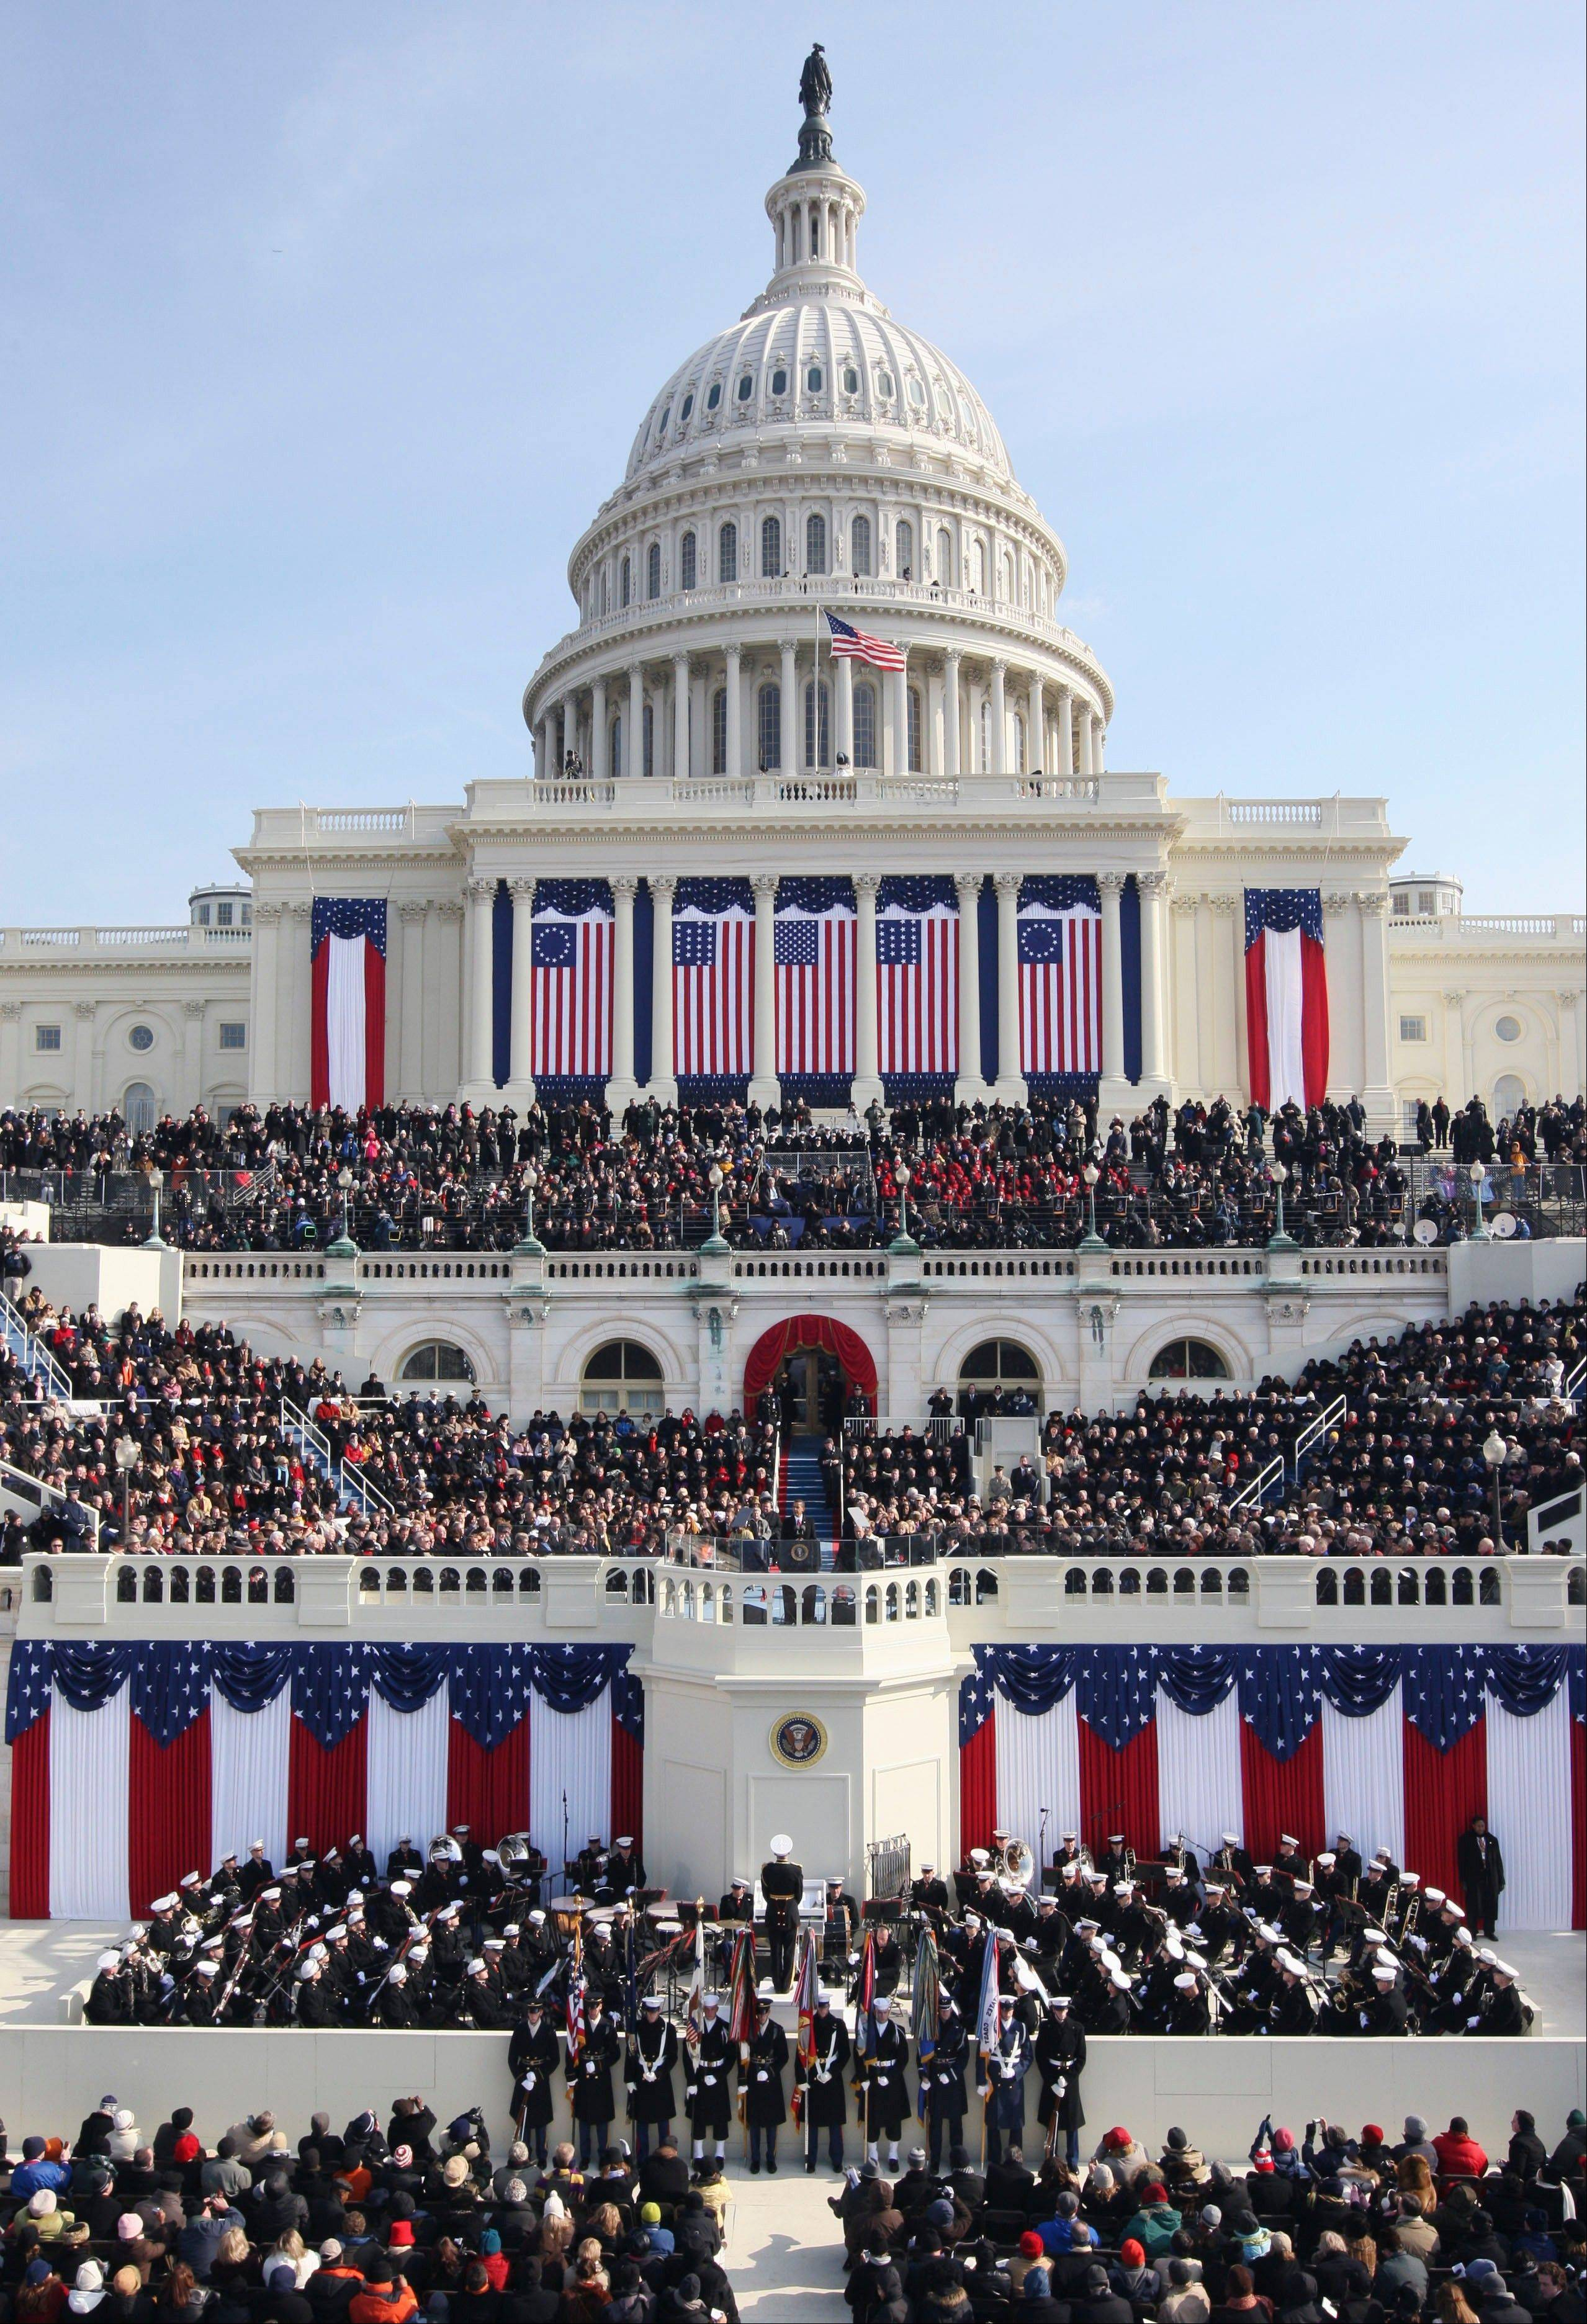 President Barack Obama gives his inaugural address at the U.S. Capitol in Washington Jan. 20, 2009. His second inauguration promises the pageantry of the first, but on a smaller scale.